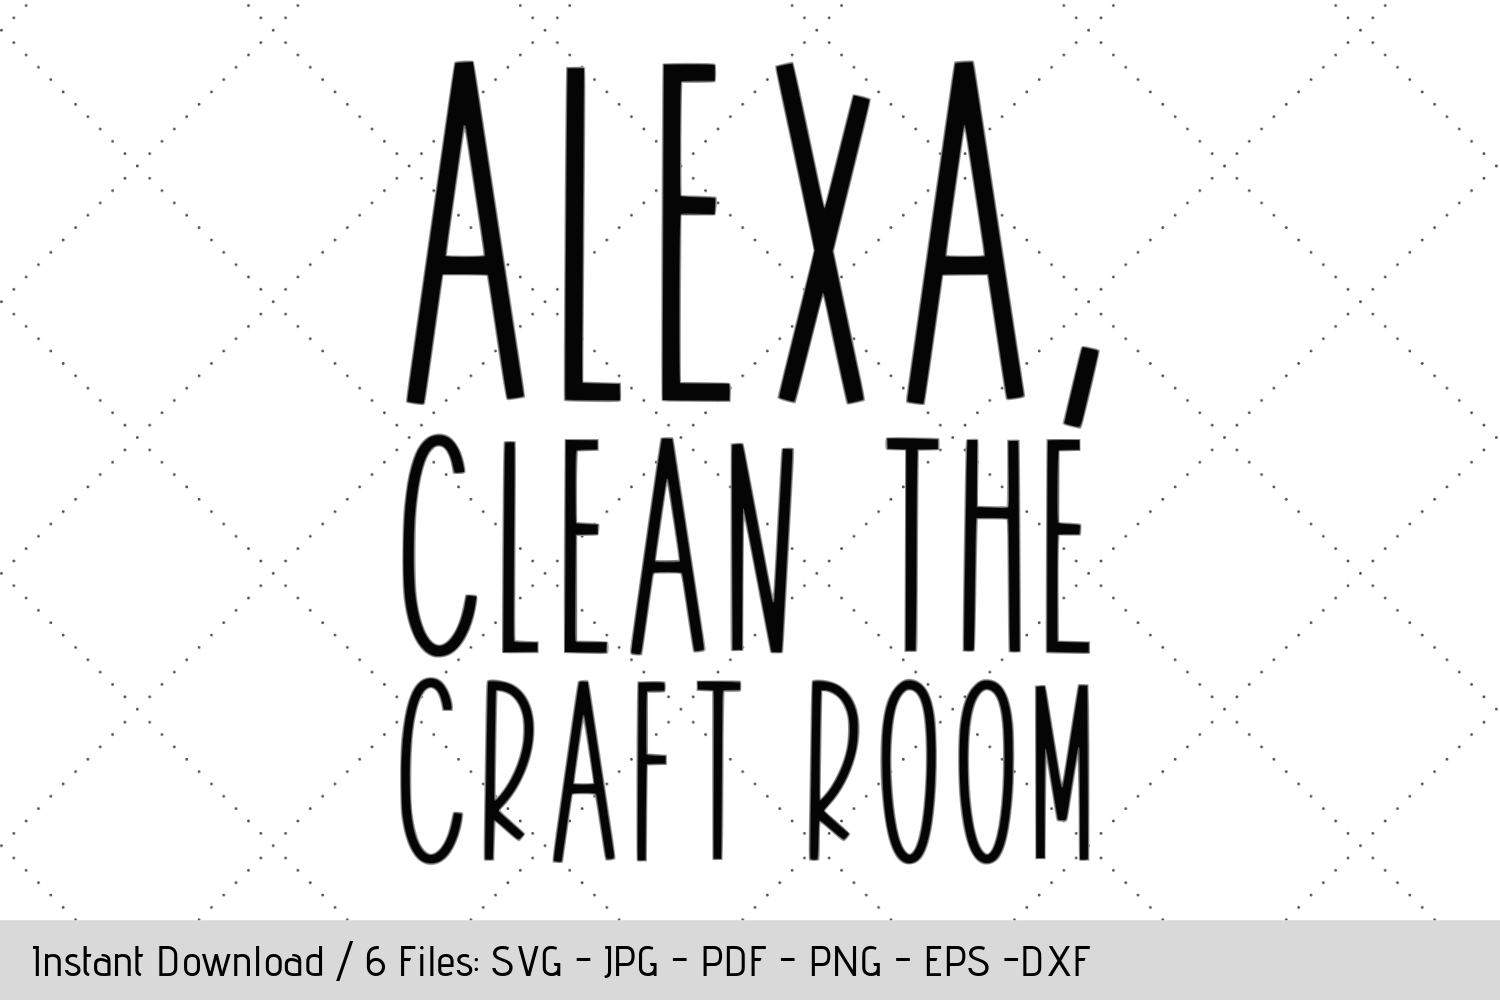 Crafts Free Svg Cut Files Create Your Diy Projects Using Your Cricut Explore Silhouette And More The Free Cut Files Include Svg Dxf Eps And Png Files